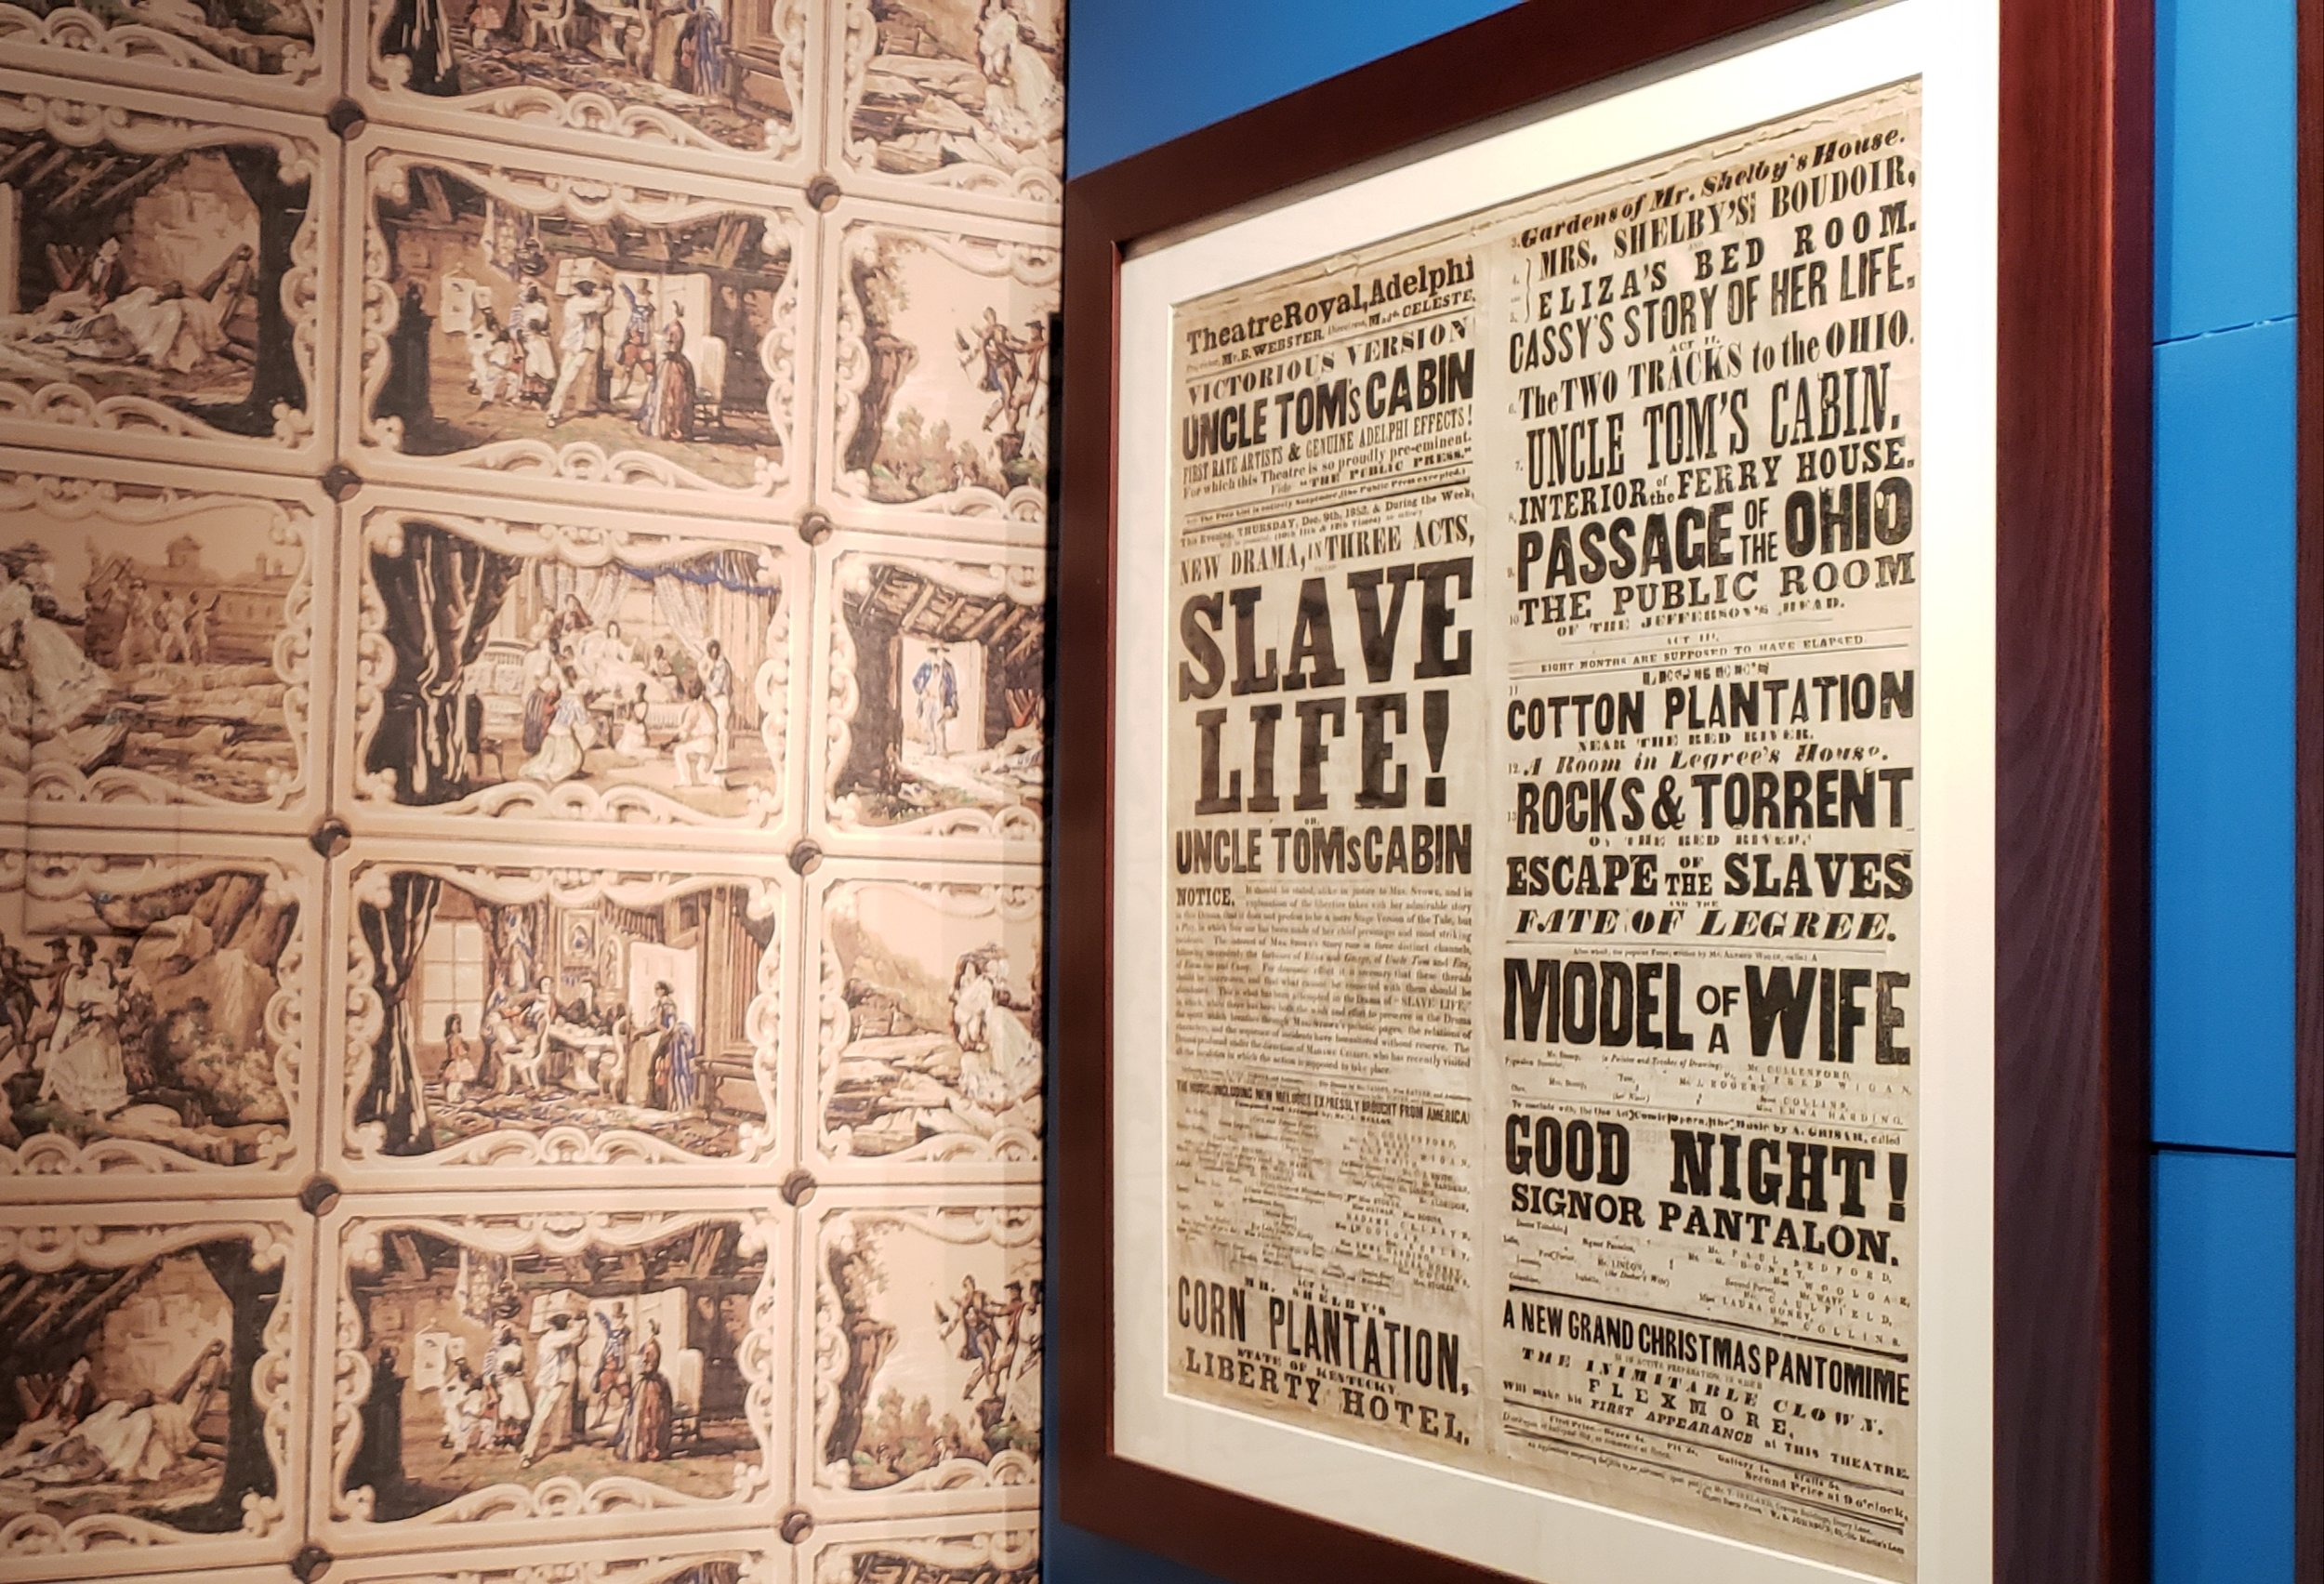 Harriet Beecher Stowe House wallpaper with illustrations from Uncle Tom's Cabin and poster for Uncle Tom' Cabin play. Stowe's writing stirred antislavery compassion before and during the Civil War.